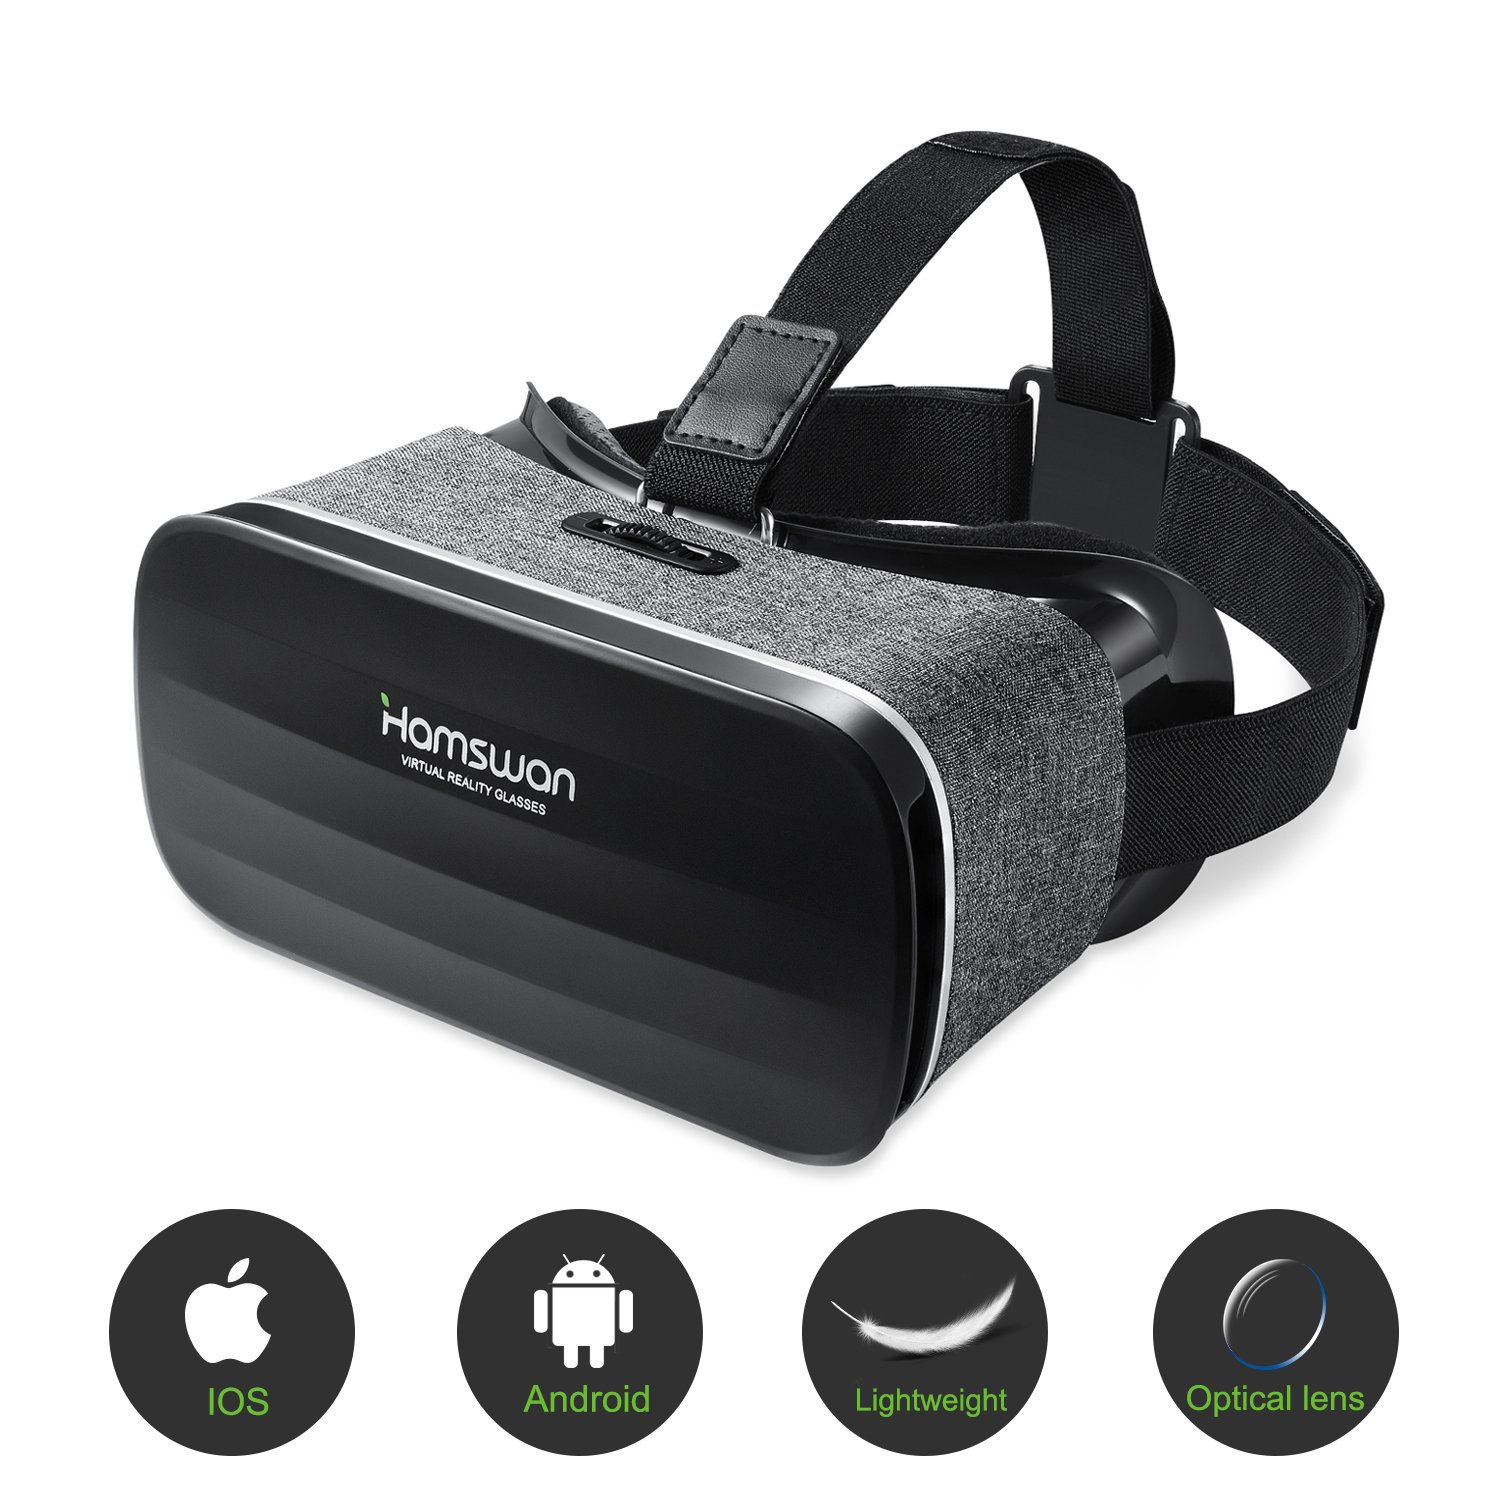 3D Virtual Reality Headset, HAMSWAN VR Goggles VR Glasses VR Headset for TV, Movies & Video Games - Light Weight VR Goggles Compatible with iOS, Android and Other Phones within 4.0-6.0 Inch by HAMSWAN (Image #1)